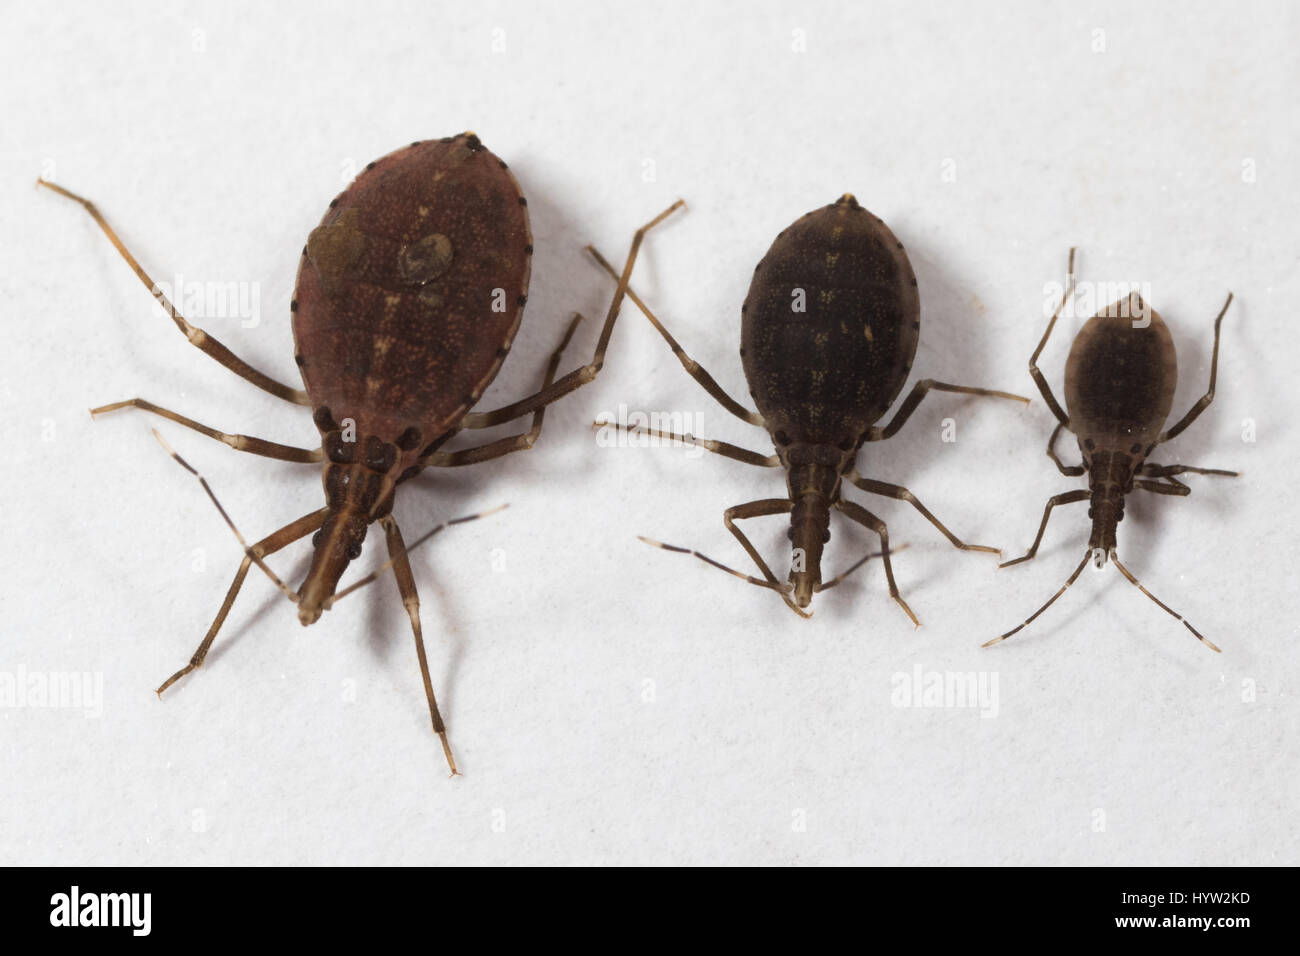 size comparison of 2nd, 3rd & 4th instar nymphs of Rhodnius prolixus (kissing bugs) - the insect that transmits - Stock Image